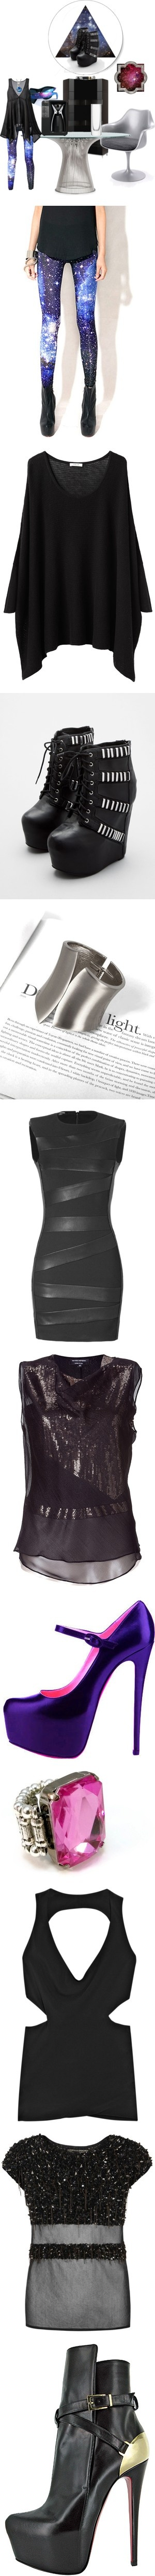 """How to wear Space Leggings!"" by india-davidson ❤ liked on Polyvore"